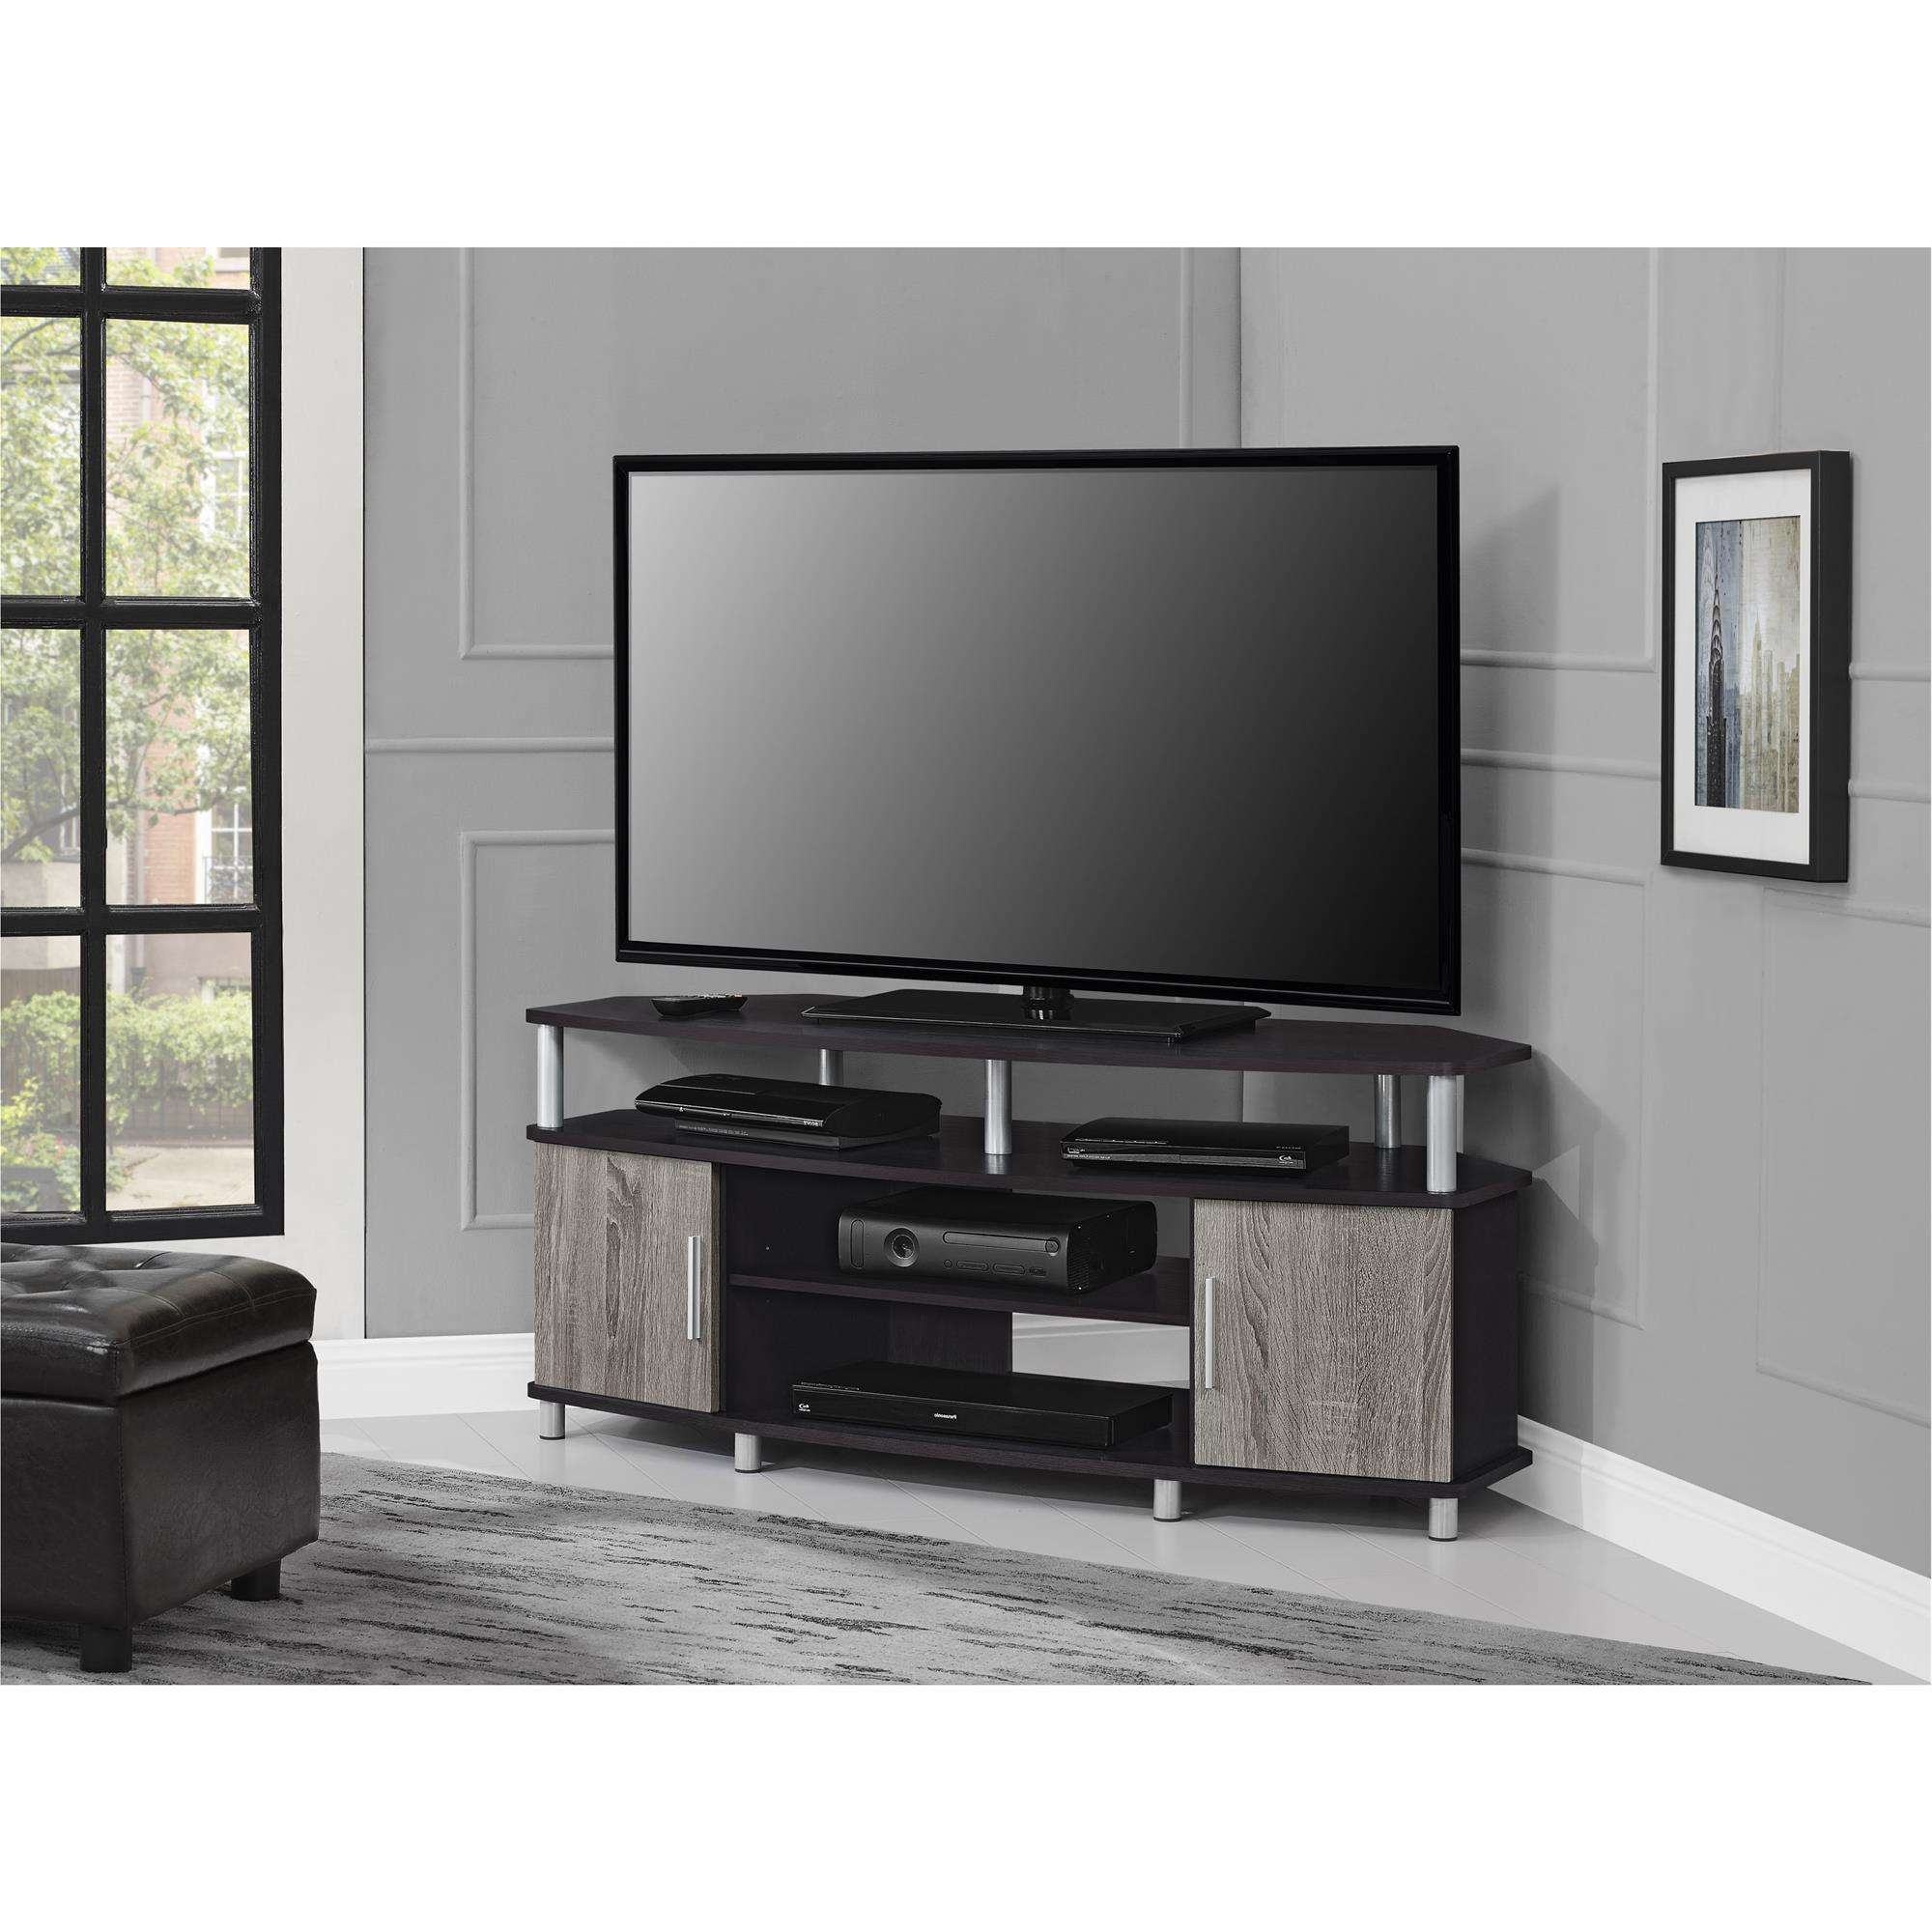 Tv Stands For Inch Furnitures Stylist Corner Stand Flat Screen Within Corner 55 Inch Tv Stands (View 14 of 15)